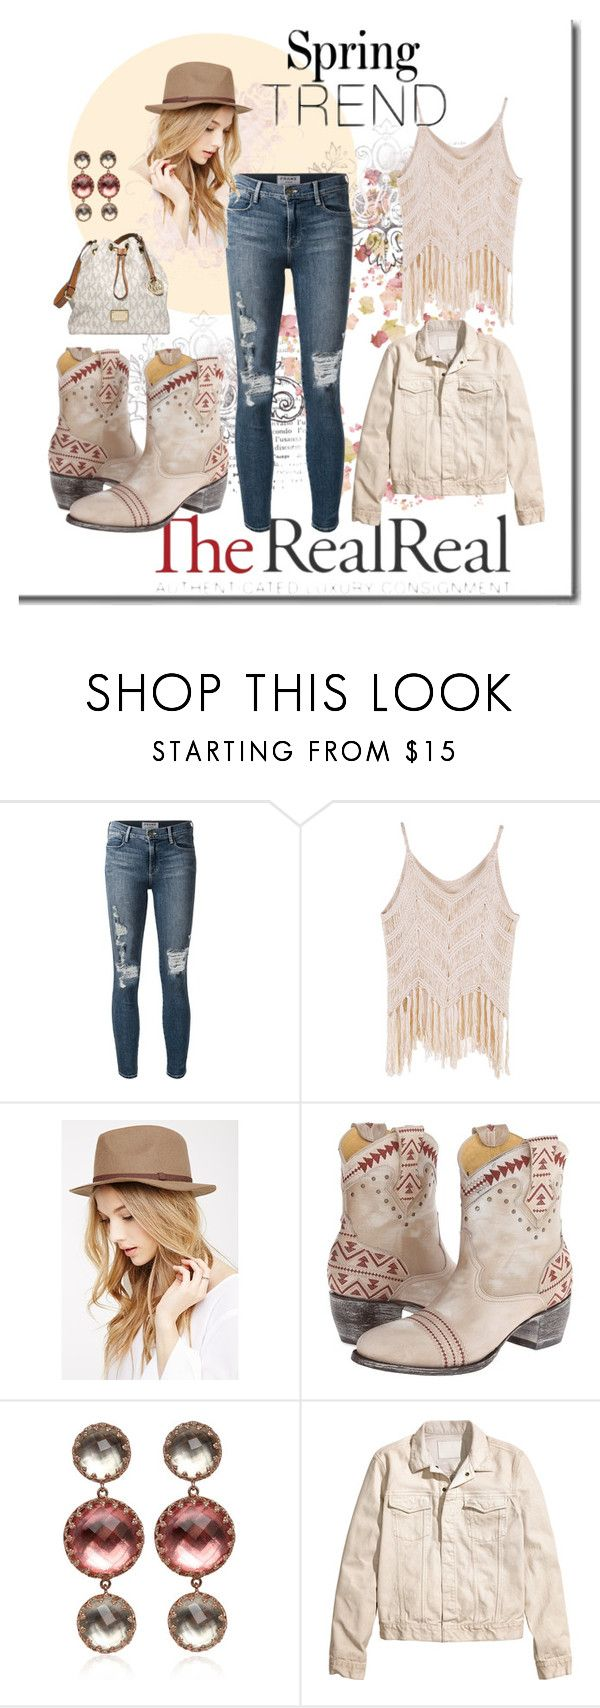 """""""Spring Trends With The RealReal: Contest Entry"""" by dawn-lindenberg ❤ liked on Polyvore featuring Frame, Forever 21, Old Gringo, Larkspur & Hawk and MICHAEL Michael Kors"""